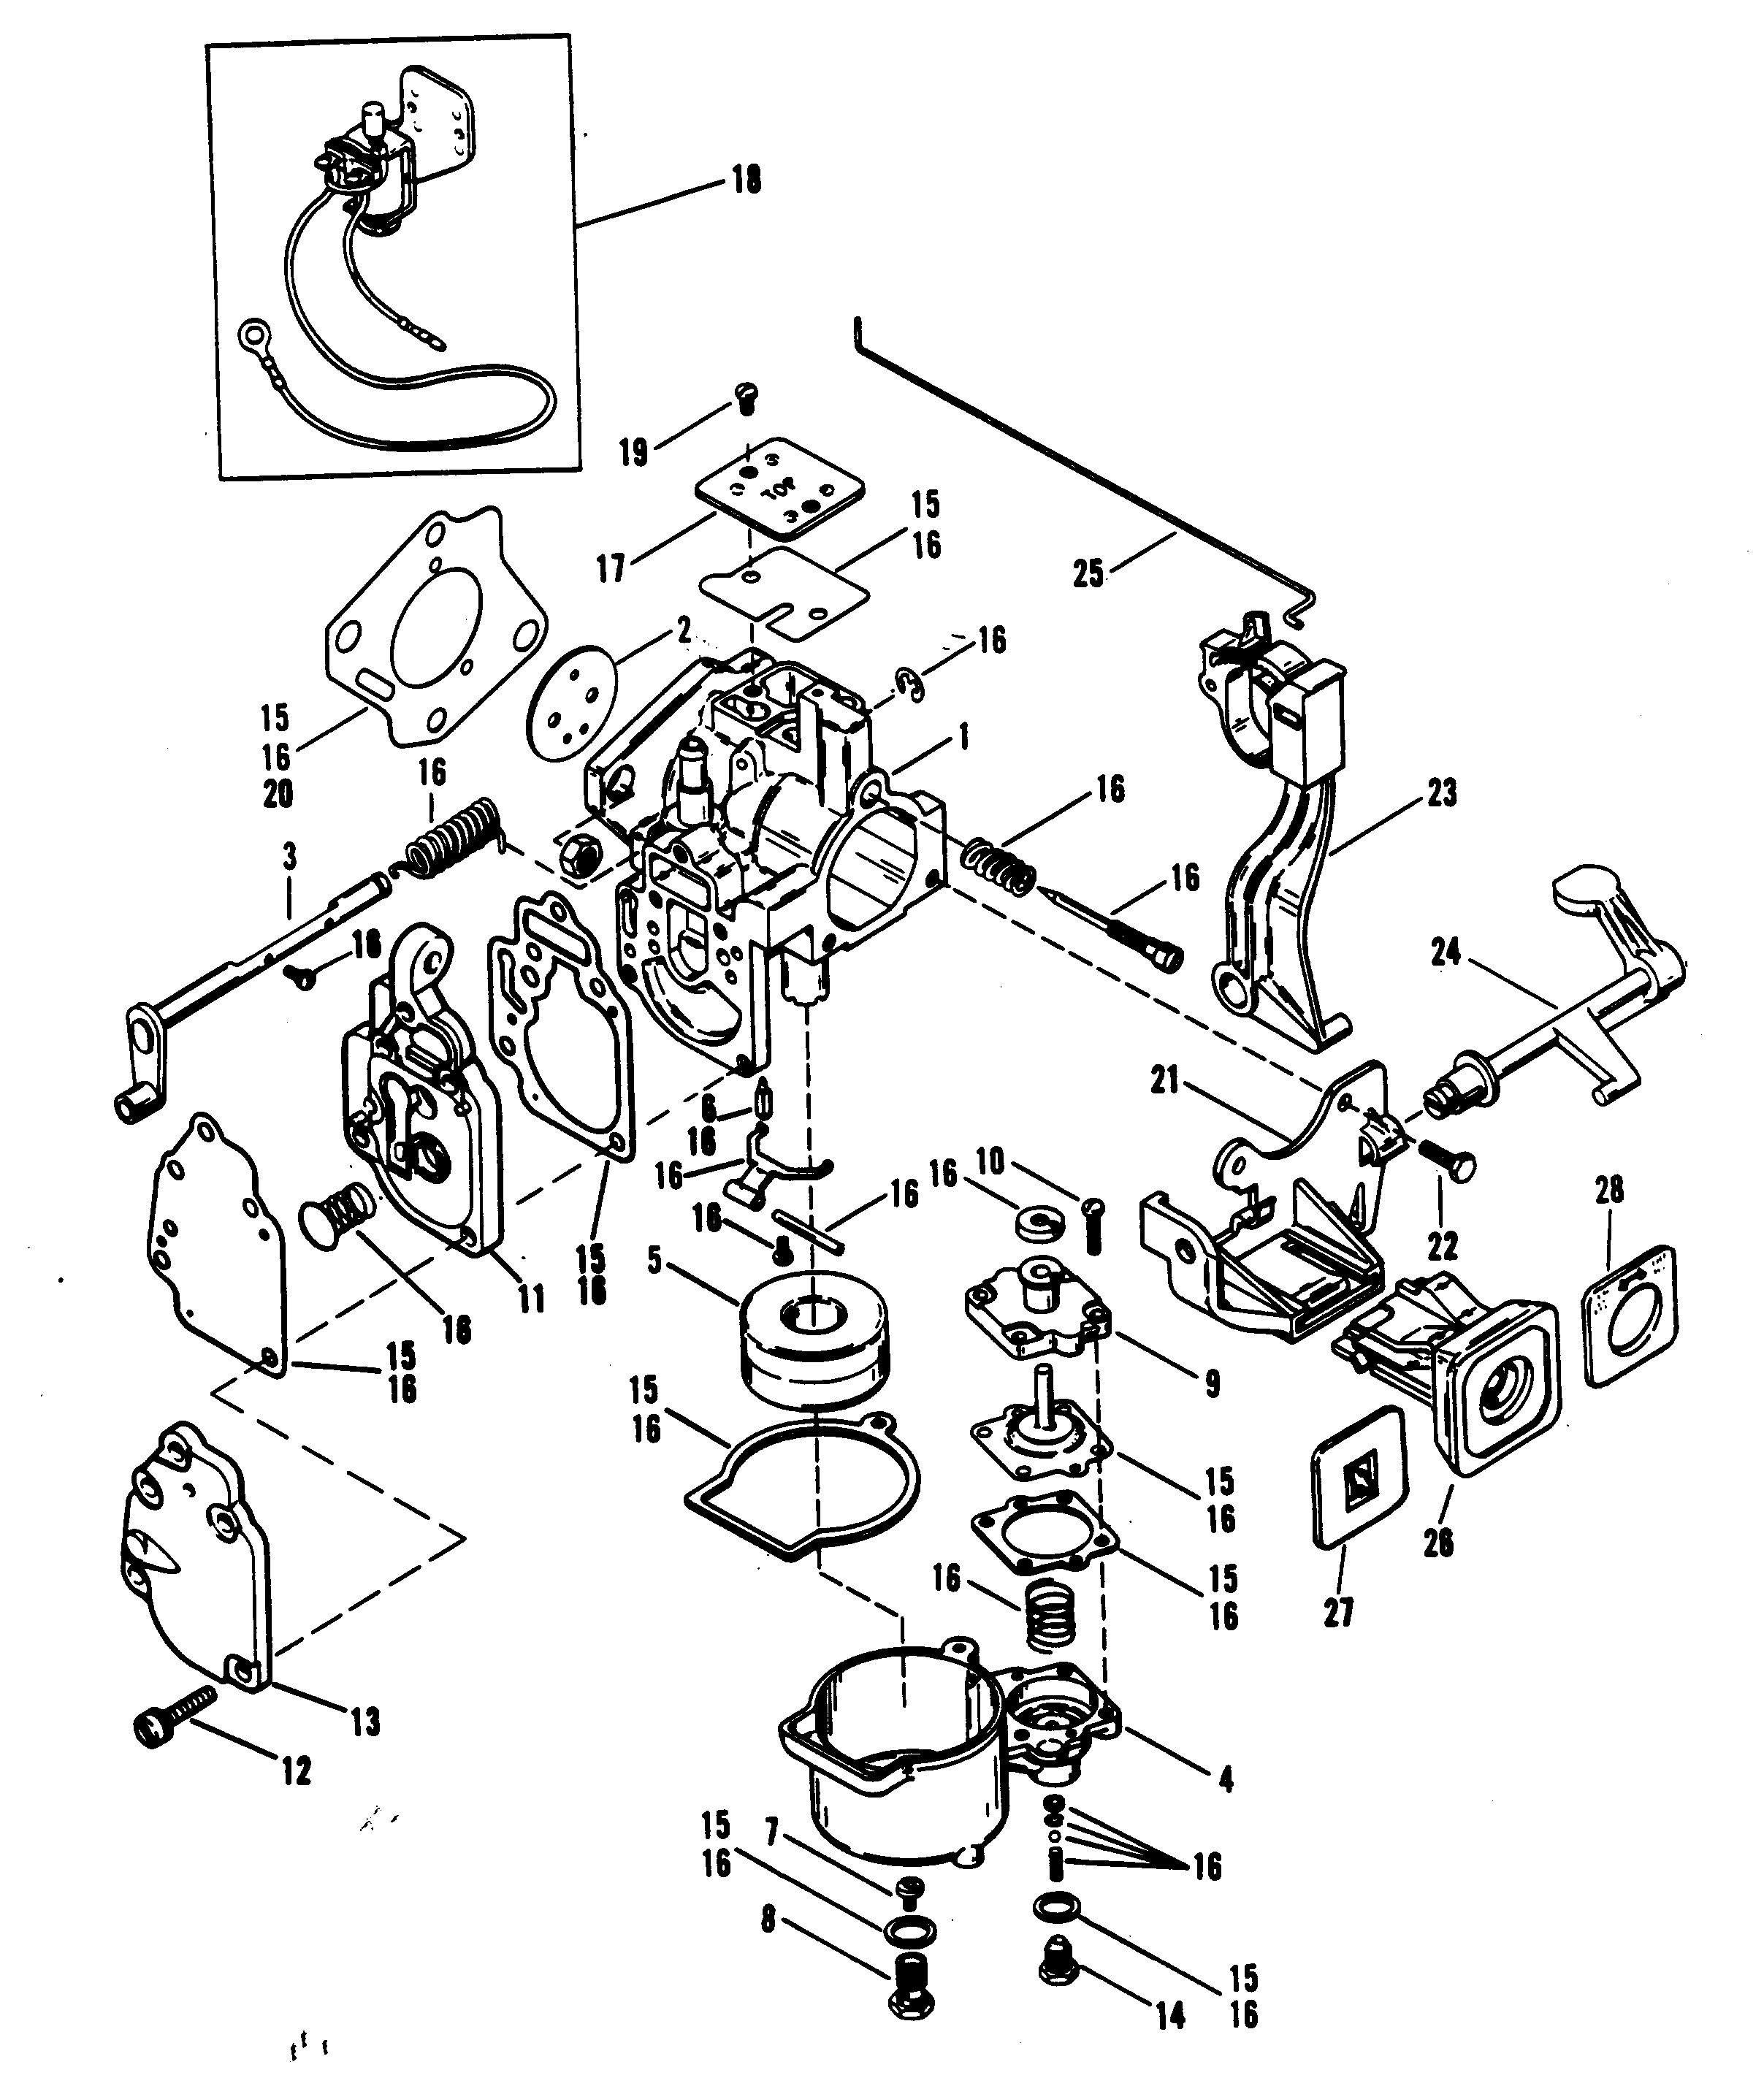 mercury outboard wiring diagram of 3 way switch 25 hp parts get free image